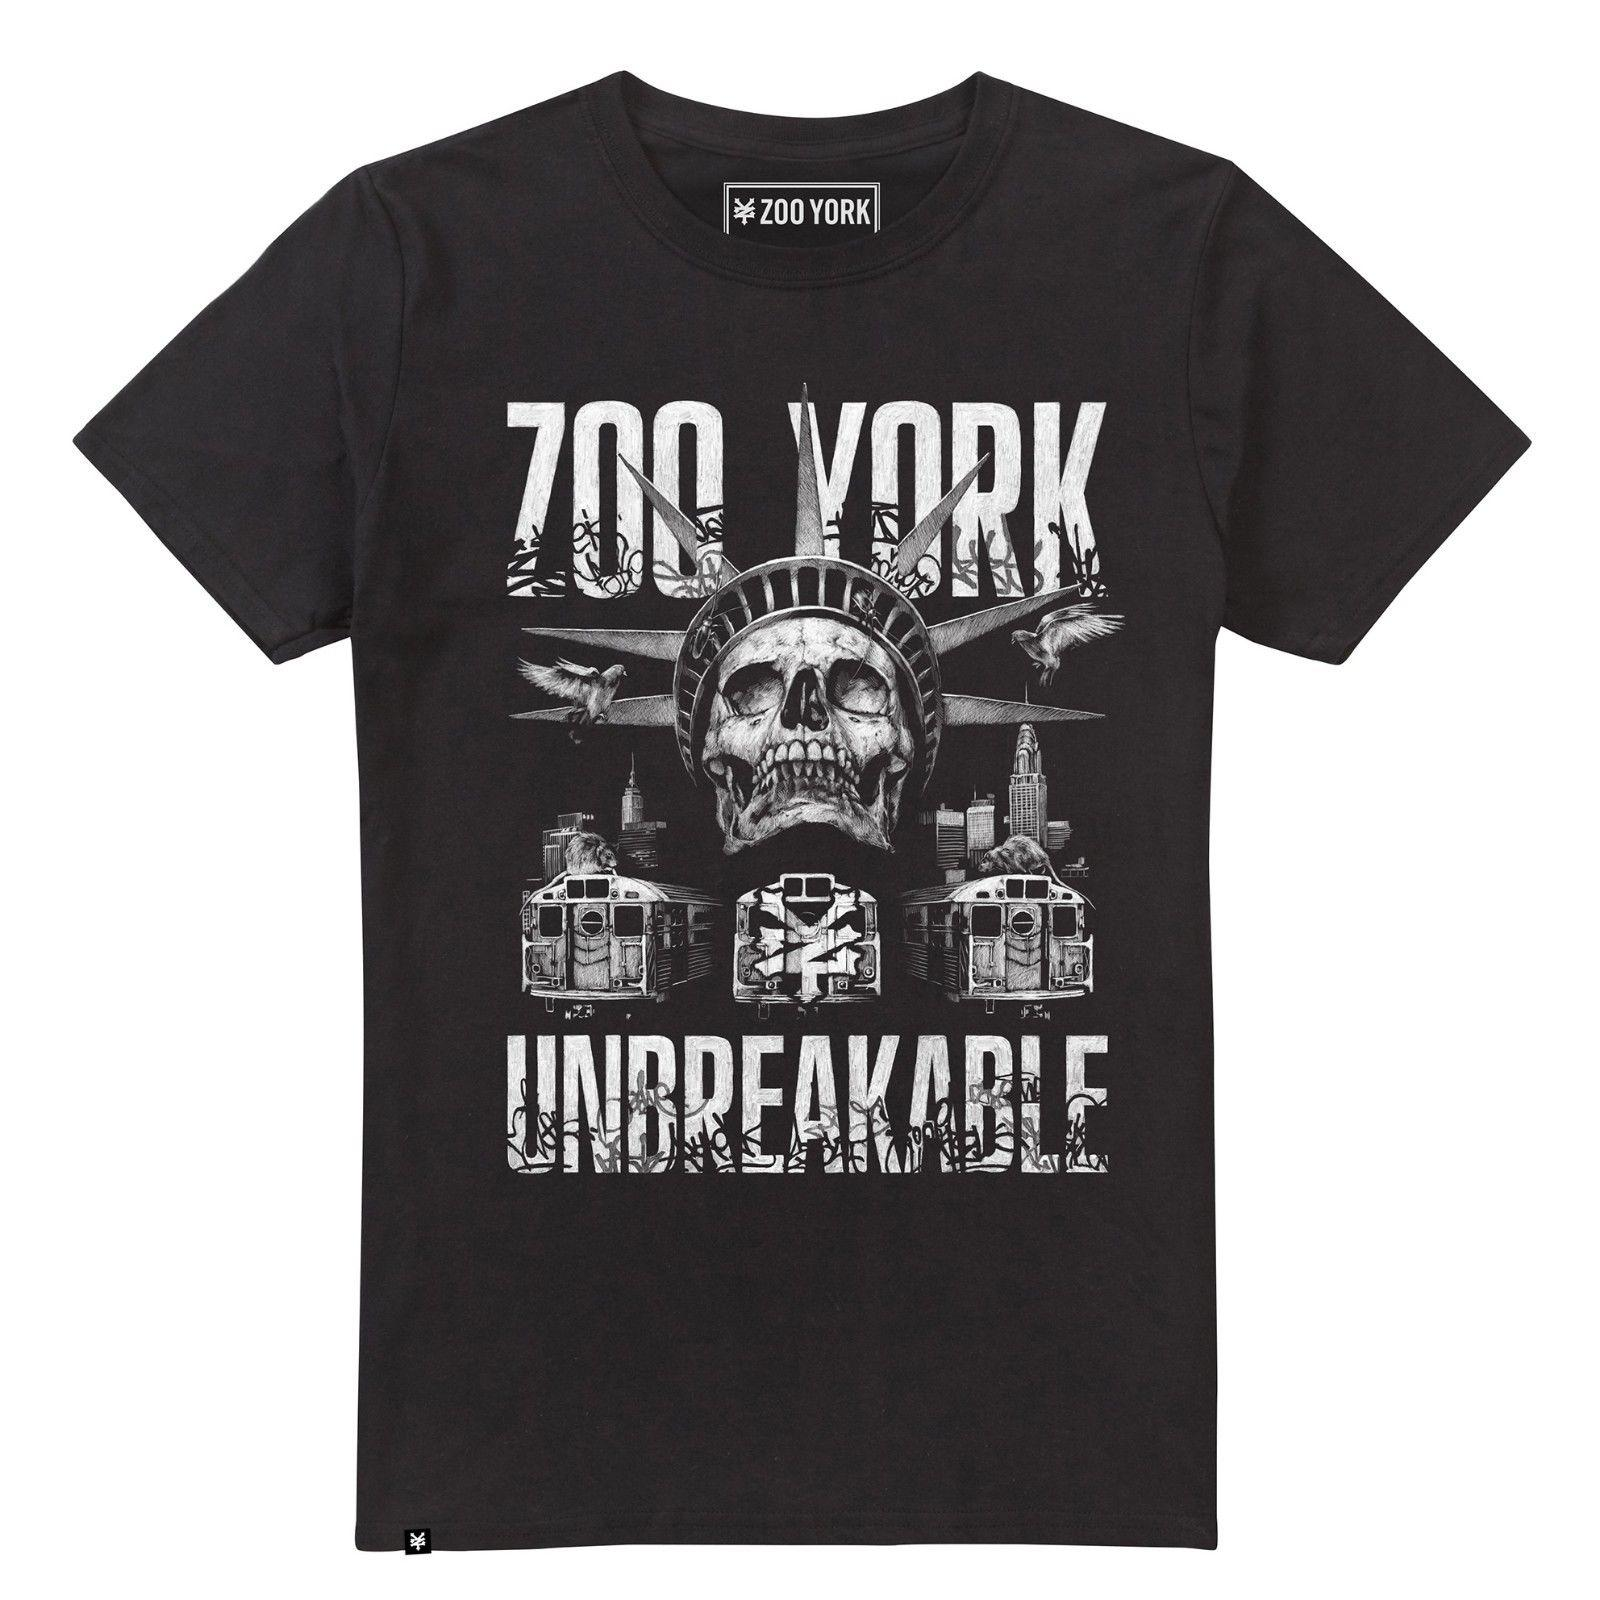 Zoo York Unbreakable Mens T-Shirt Skate Street Moda stile Divertente Tee Shirts Hipster O-Collo Cool Top Hip Hop Manica corta